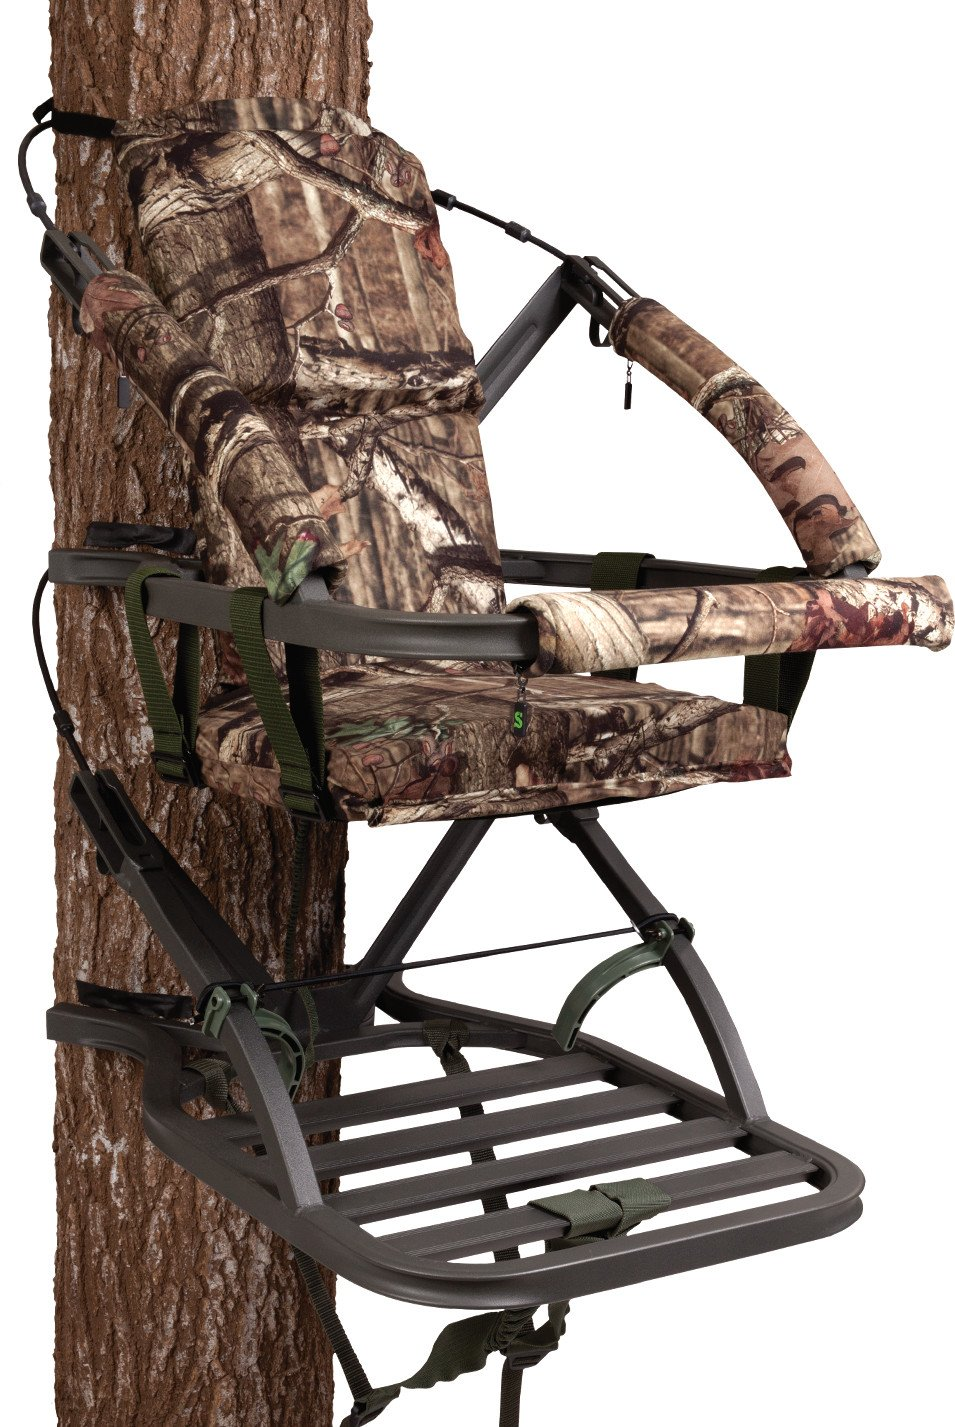 Top 10 Best Climbing Tree Stand 2020 Reviews For The Money 6